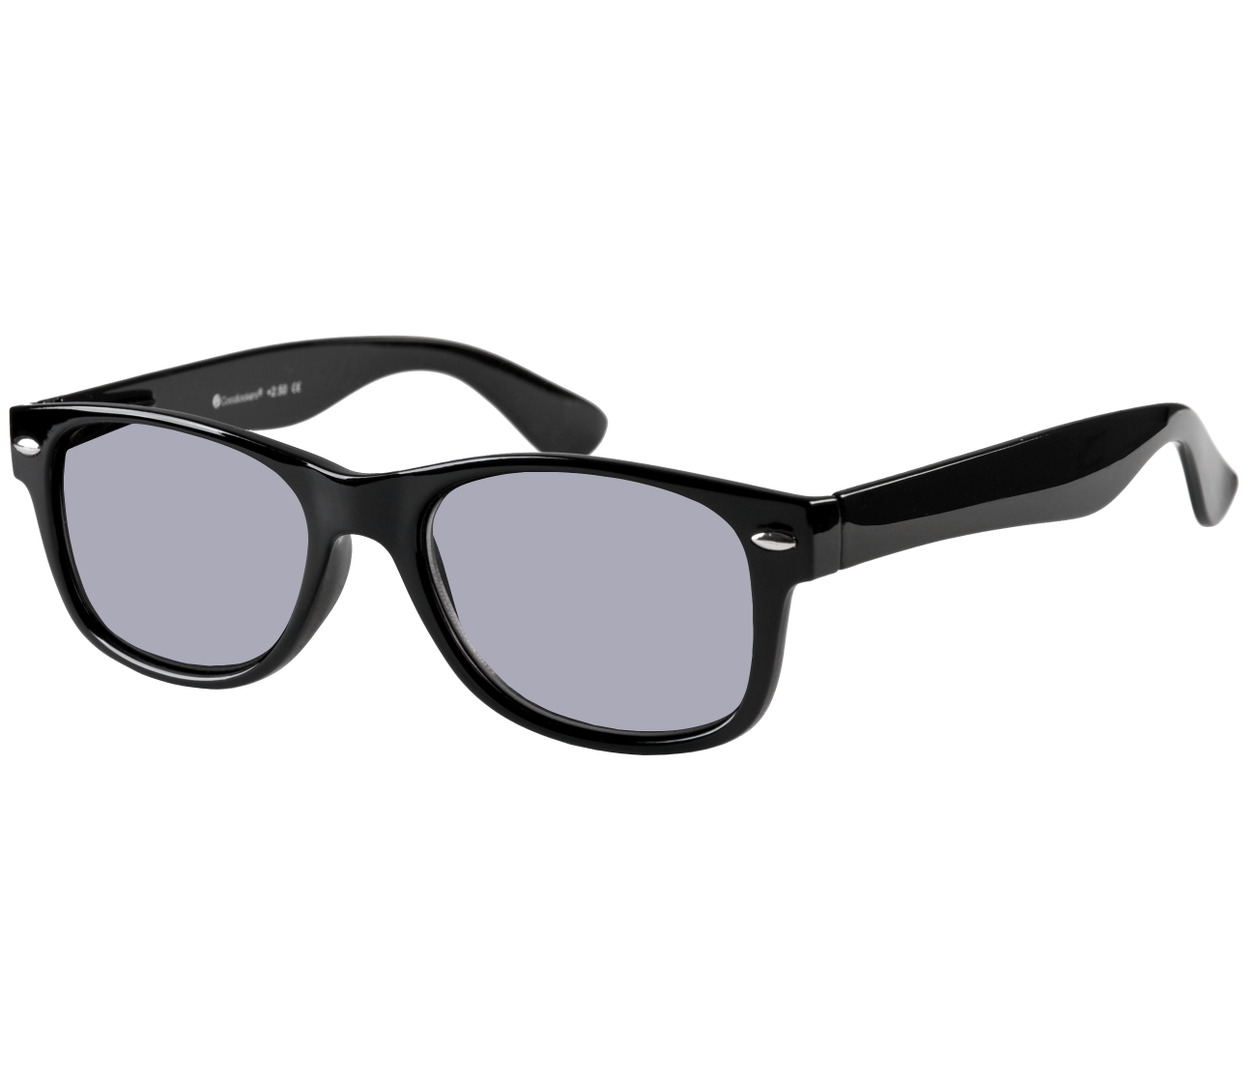 Dakota (Black) Wayfarer Sun Readers